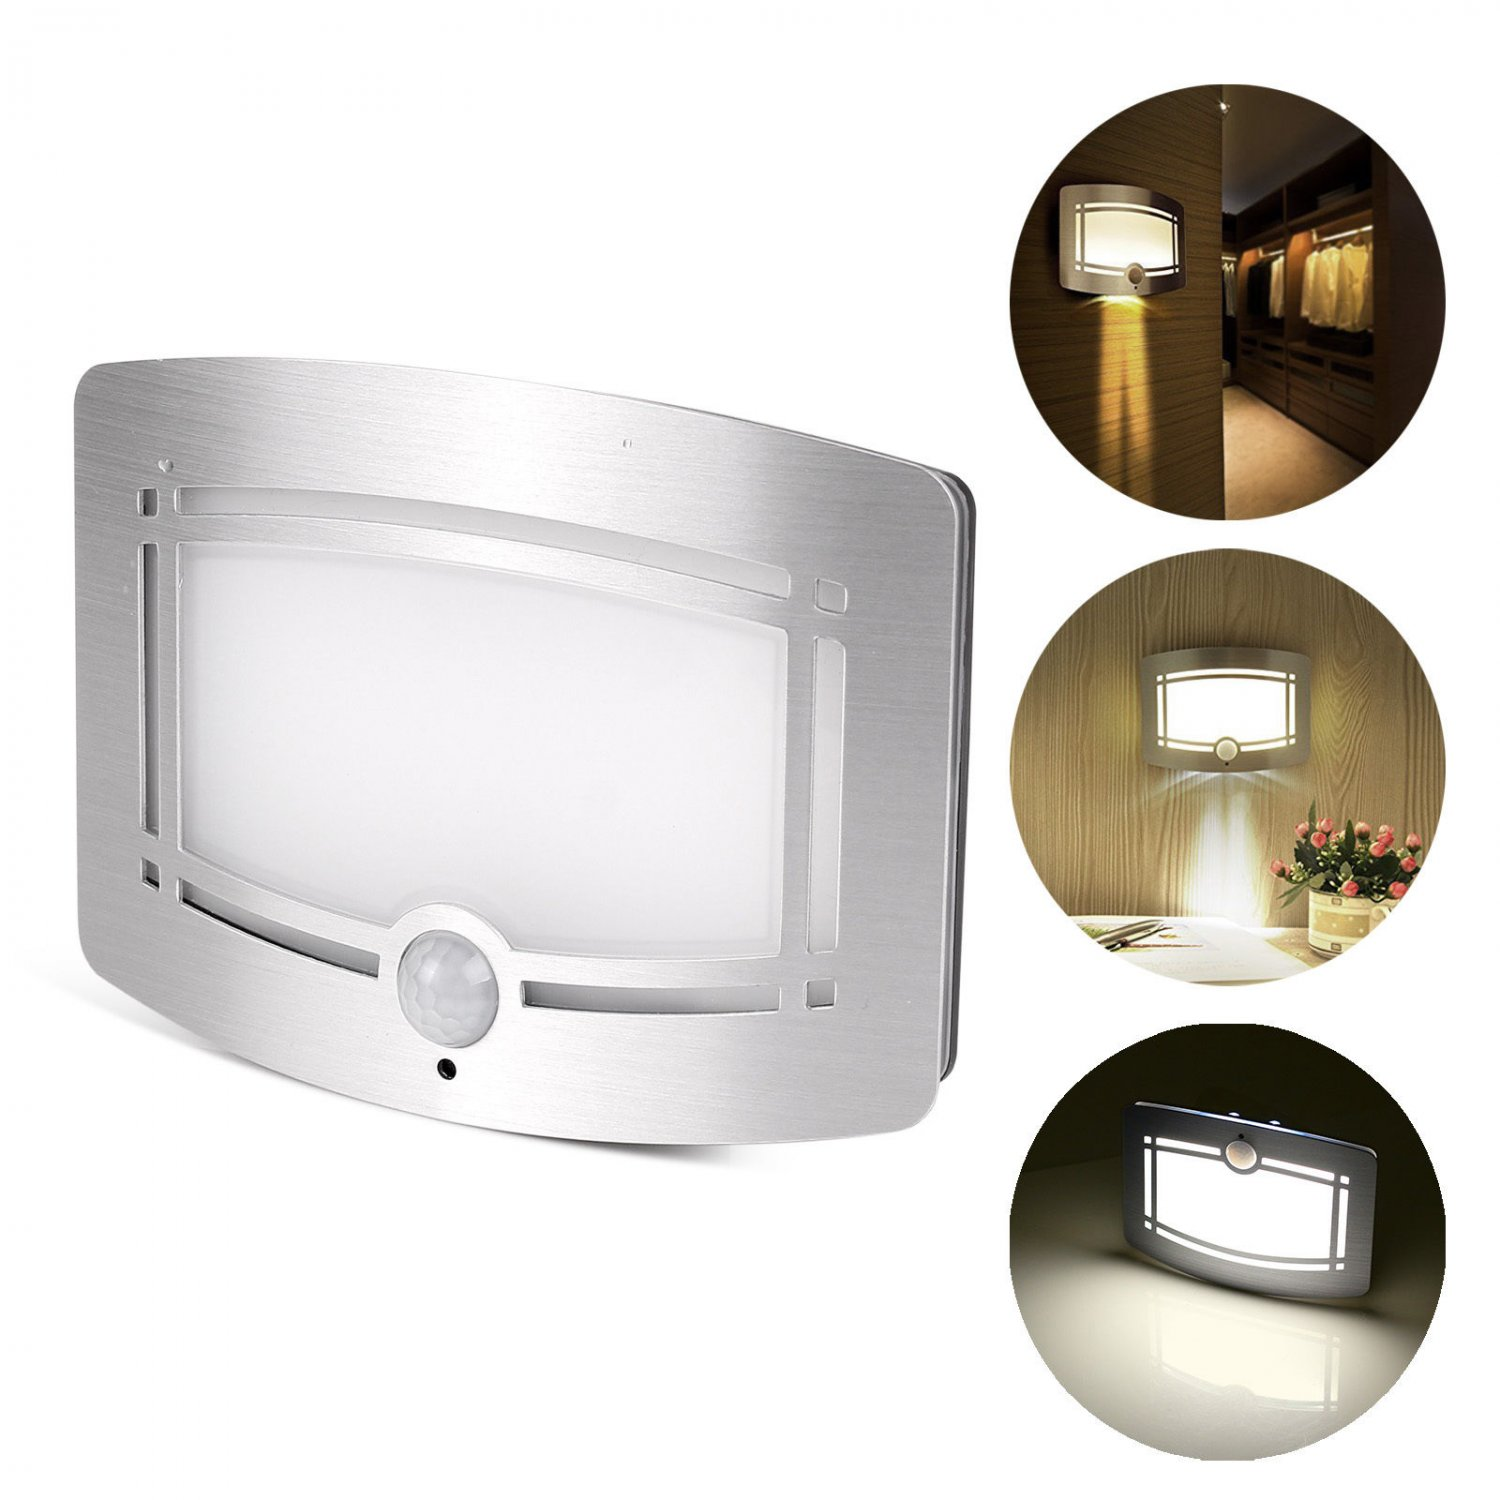 Motion Sensor Activated LED Sconce Wireless Night Light Lamp Battery Operated